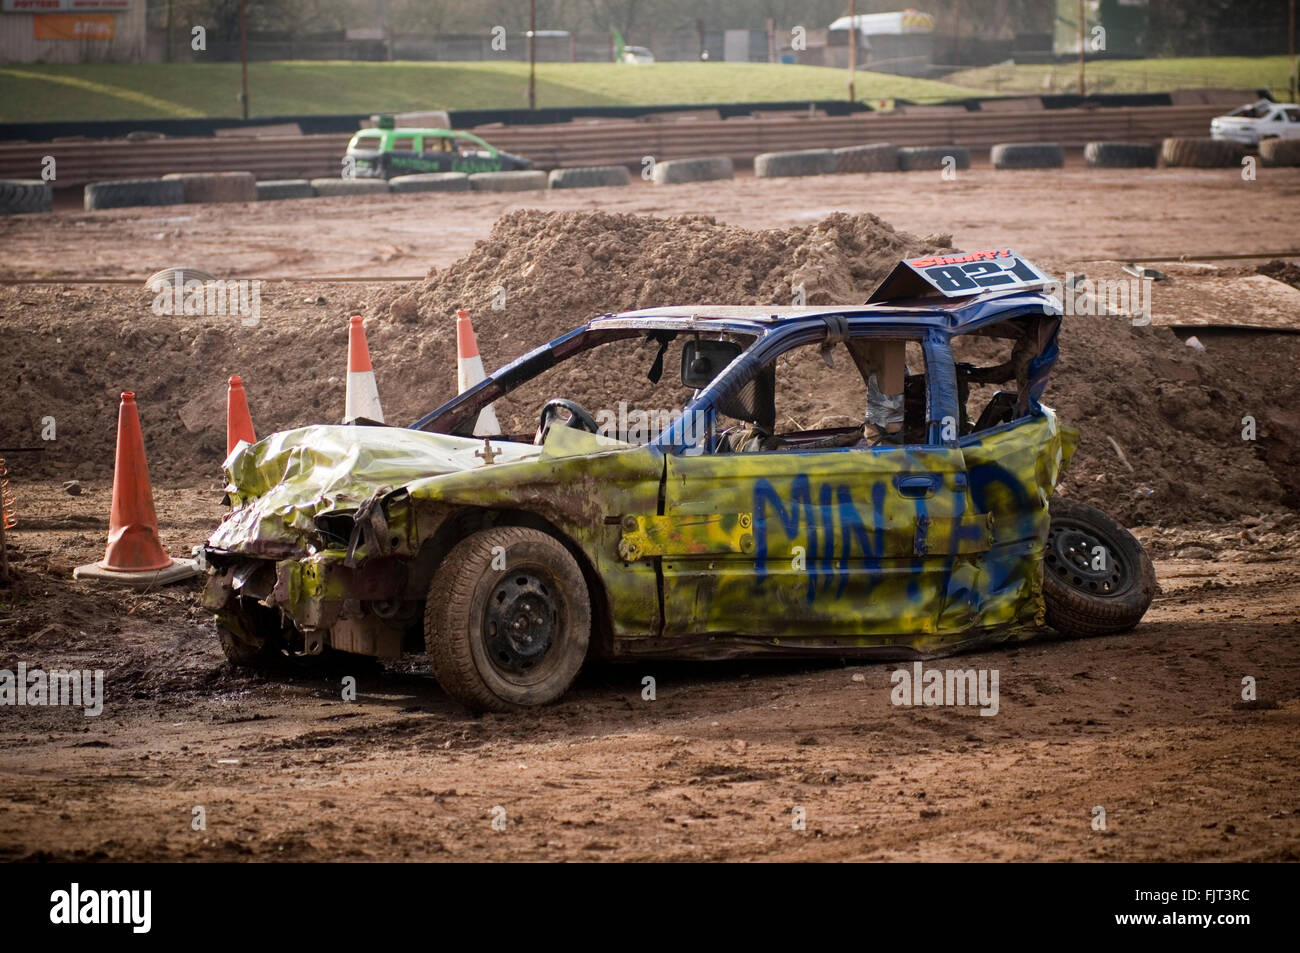 smashed up old car at demo derby destruction demolition derbies ...